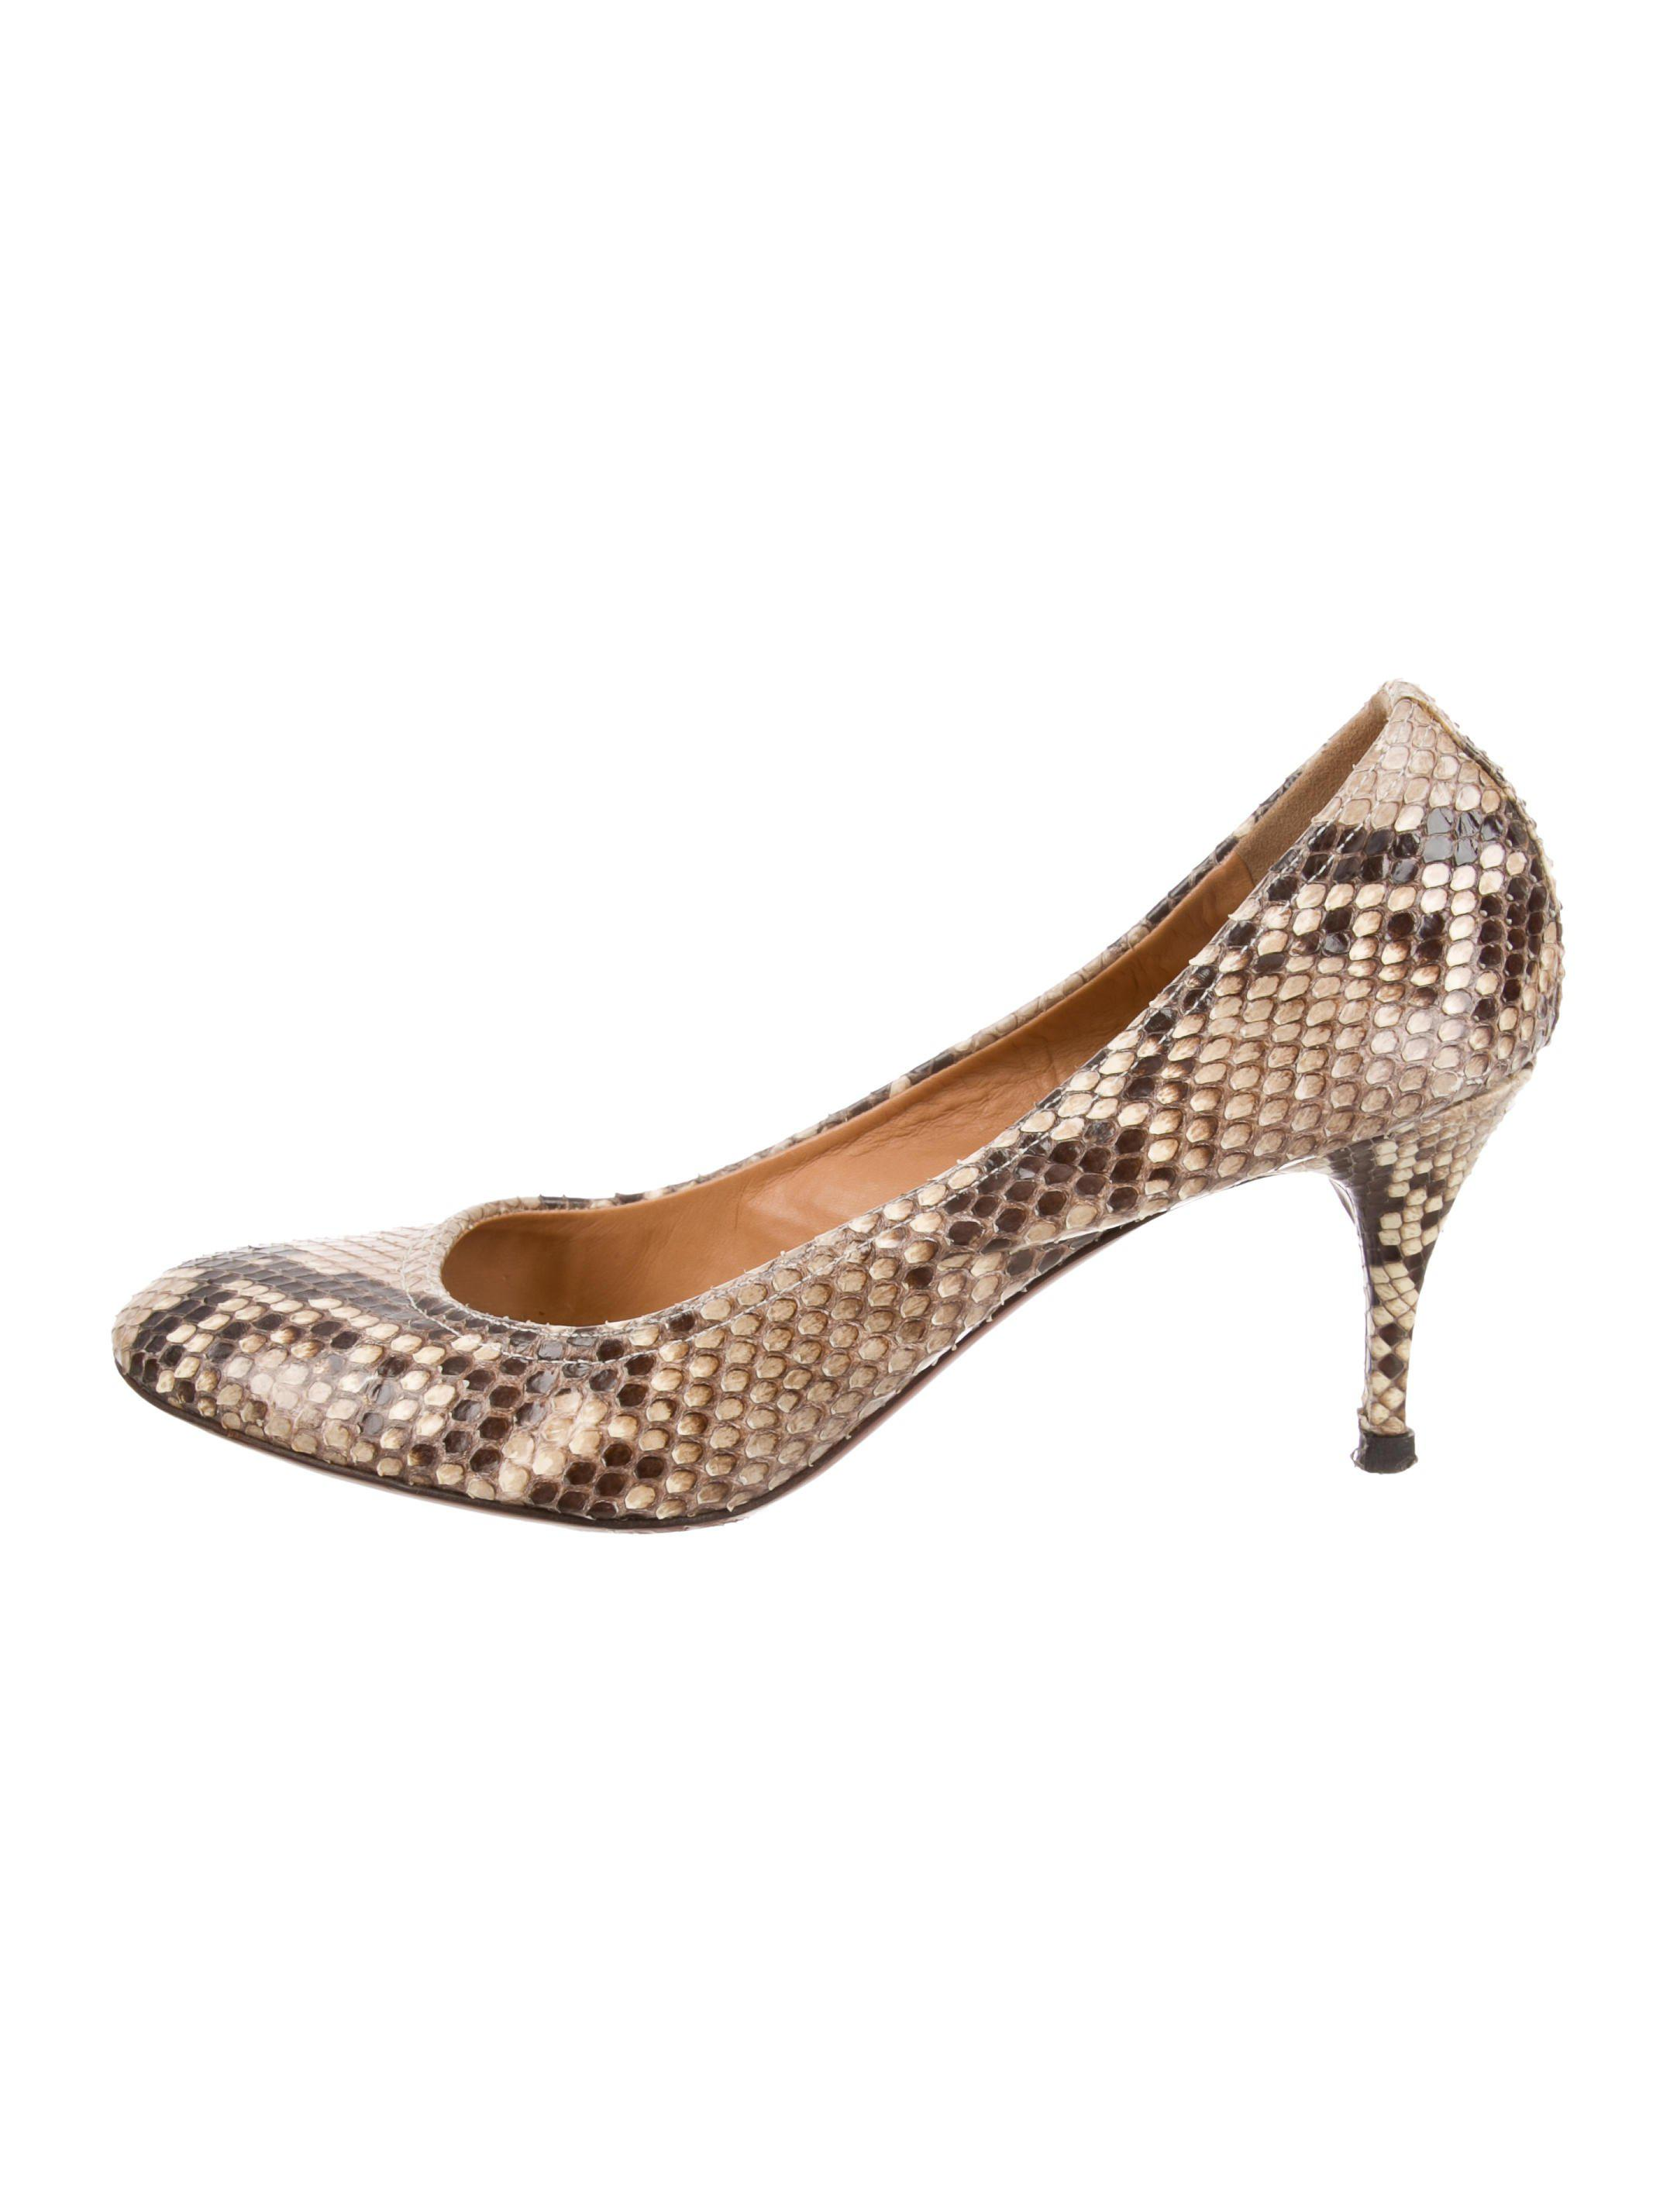 outlet tumblr Lanvin Snakeskin Round-Toe Pumps discount original huge surprise cheap price clearance IKRckqE9y